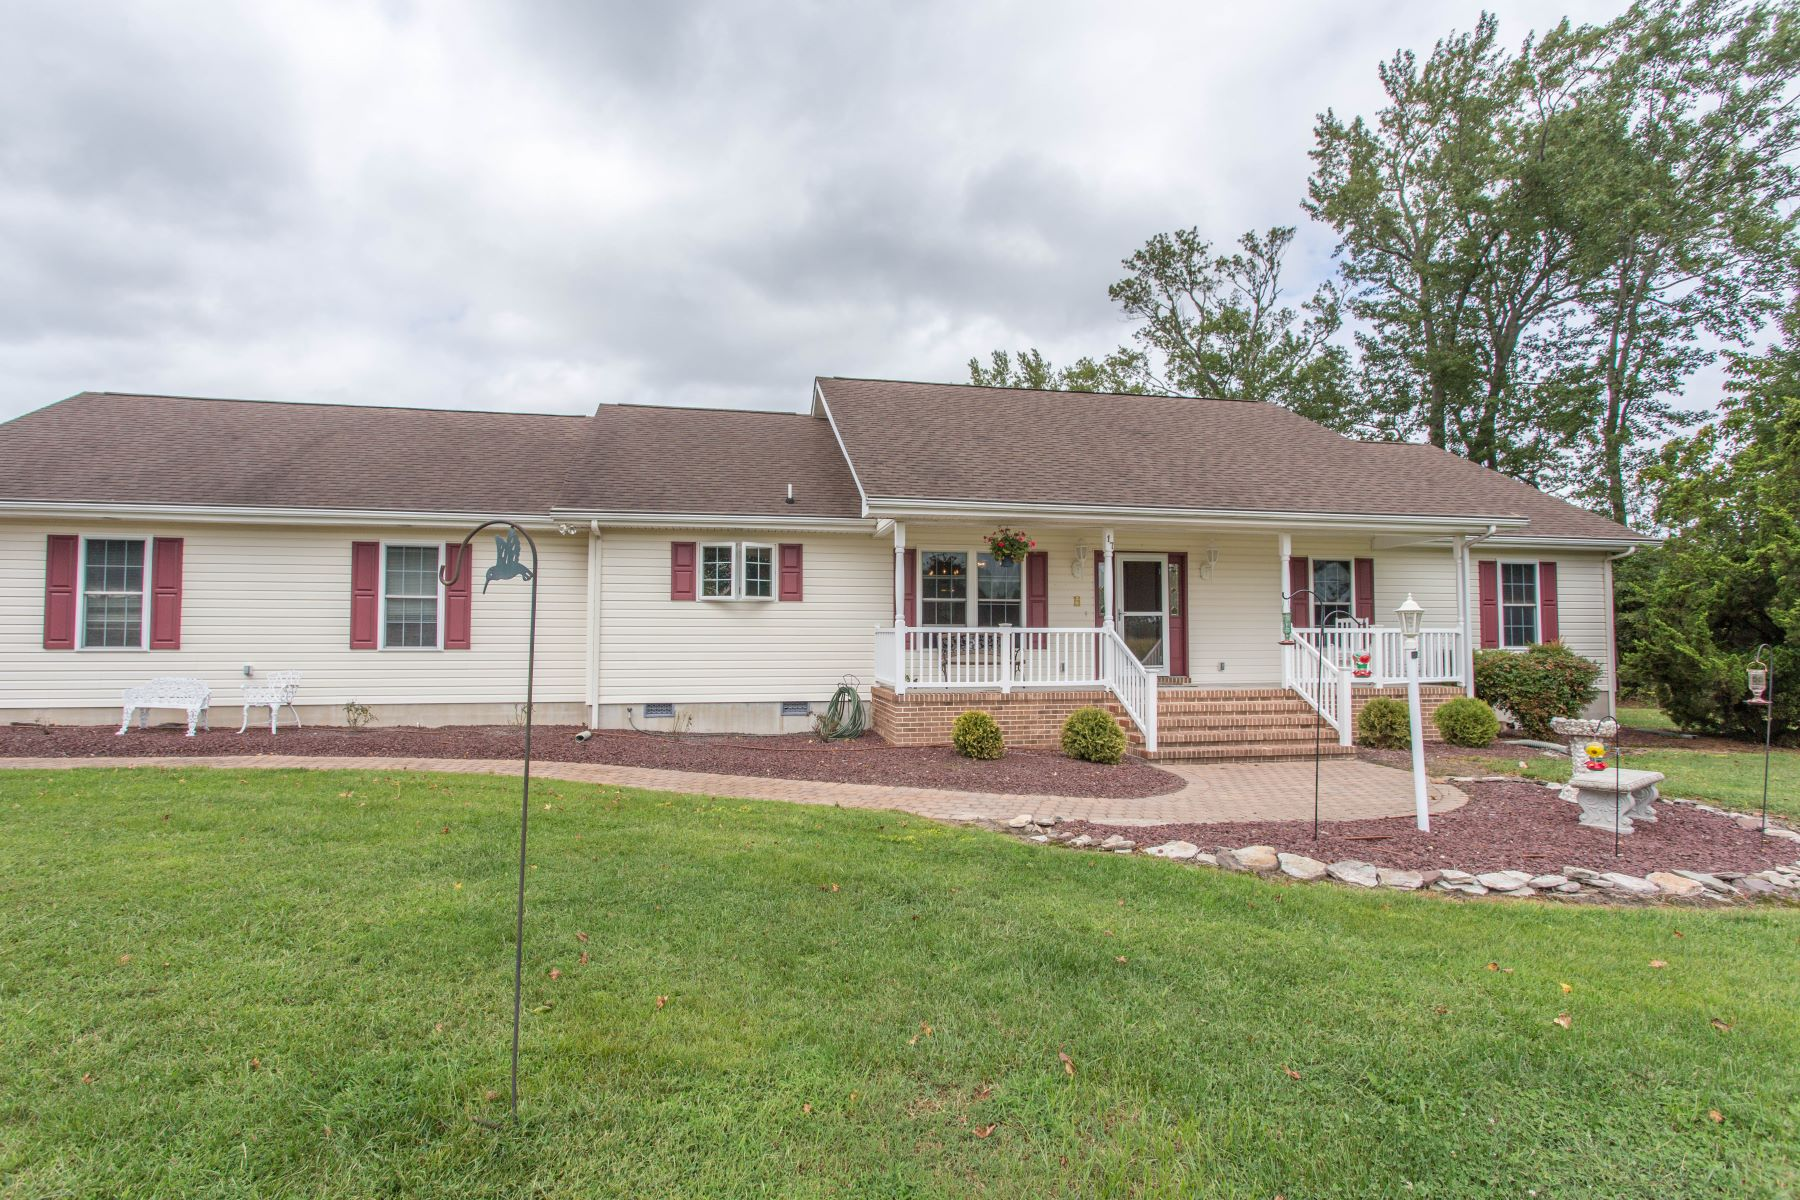 Single Family Homes for Sale at 17 Delaware Avenue Frankford, Delaware 19945 United States